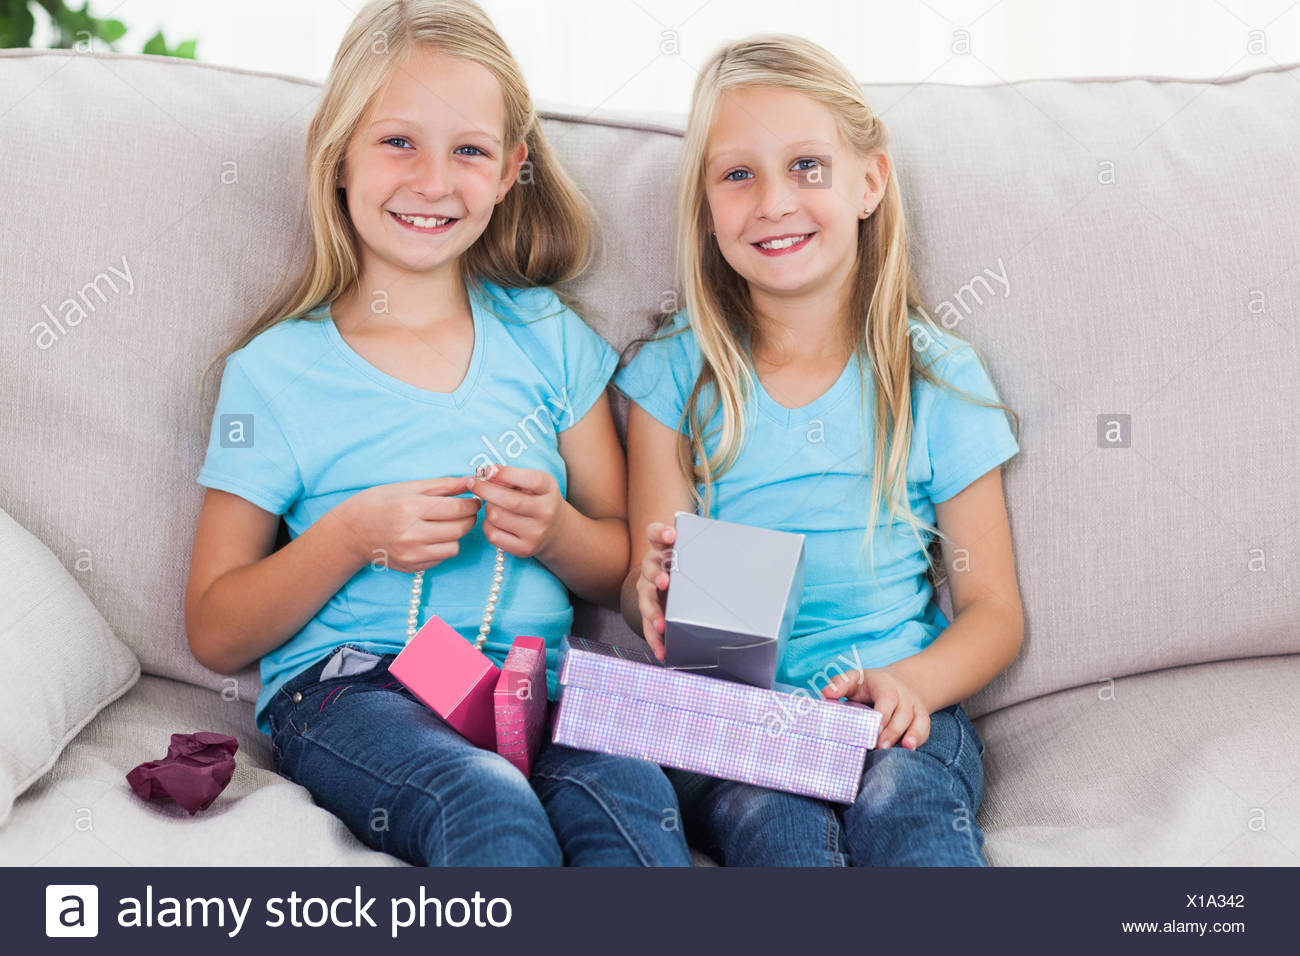 Cute Twins Unwrapping Birthday Gift Sitting On A Couch